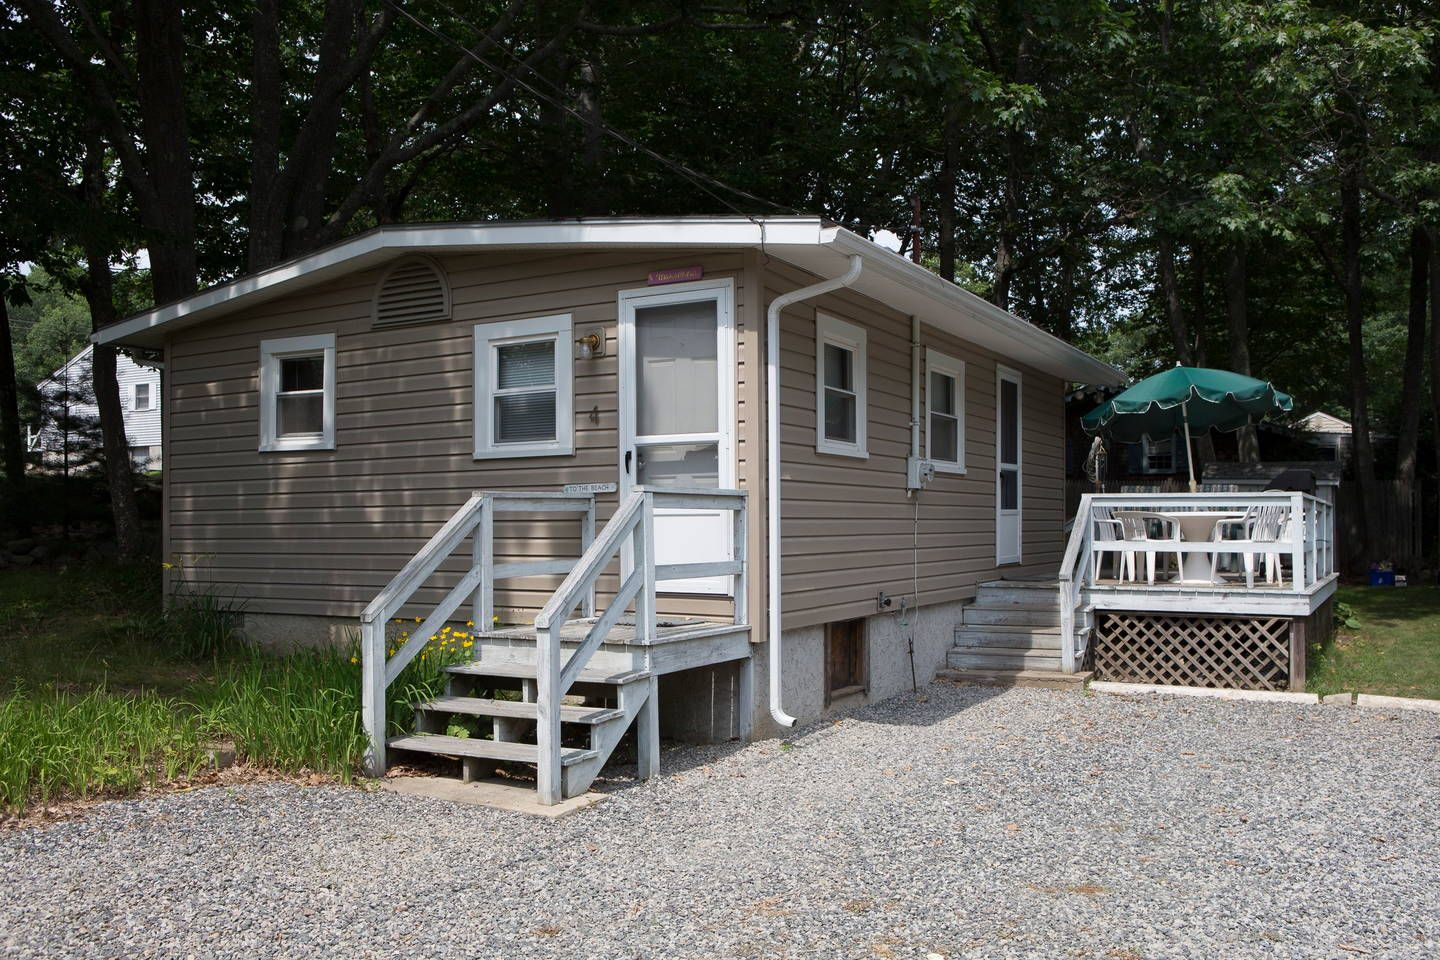 House In York United States Five Minute Walk To Long Sands Beach Cottage Is On A Charming Unpaved Road Quiet Neighborhood Of Small Vintage